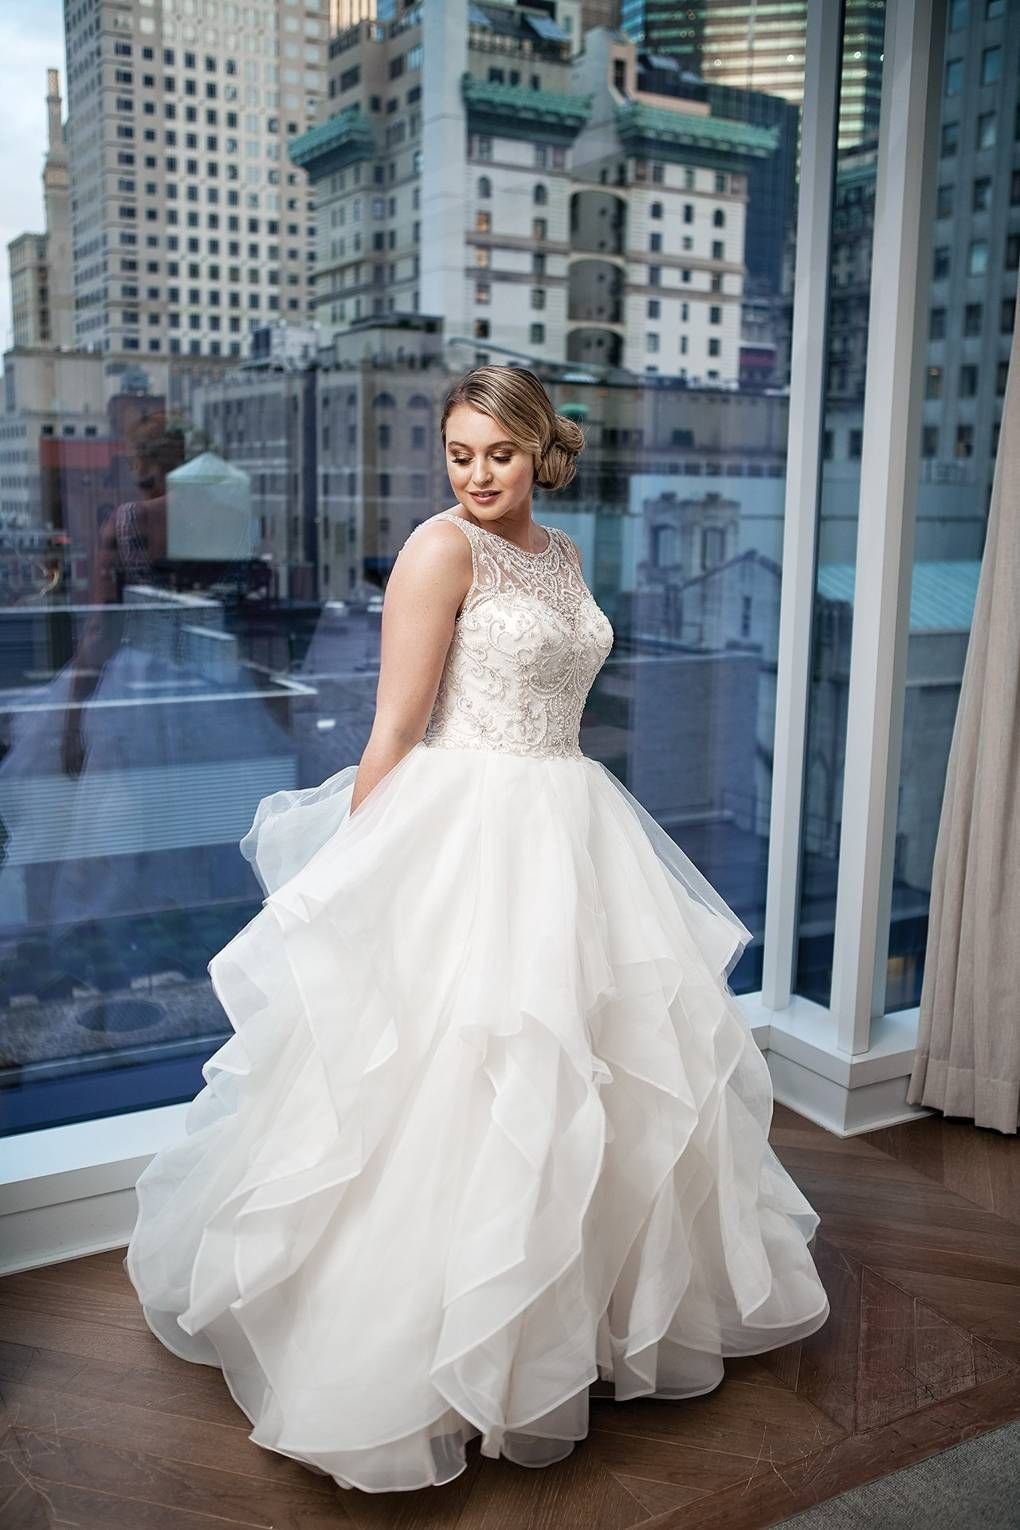 27 Plus Size Wedding Dresses to Flatter and Flaunt Your